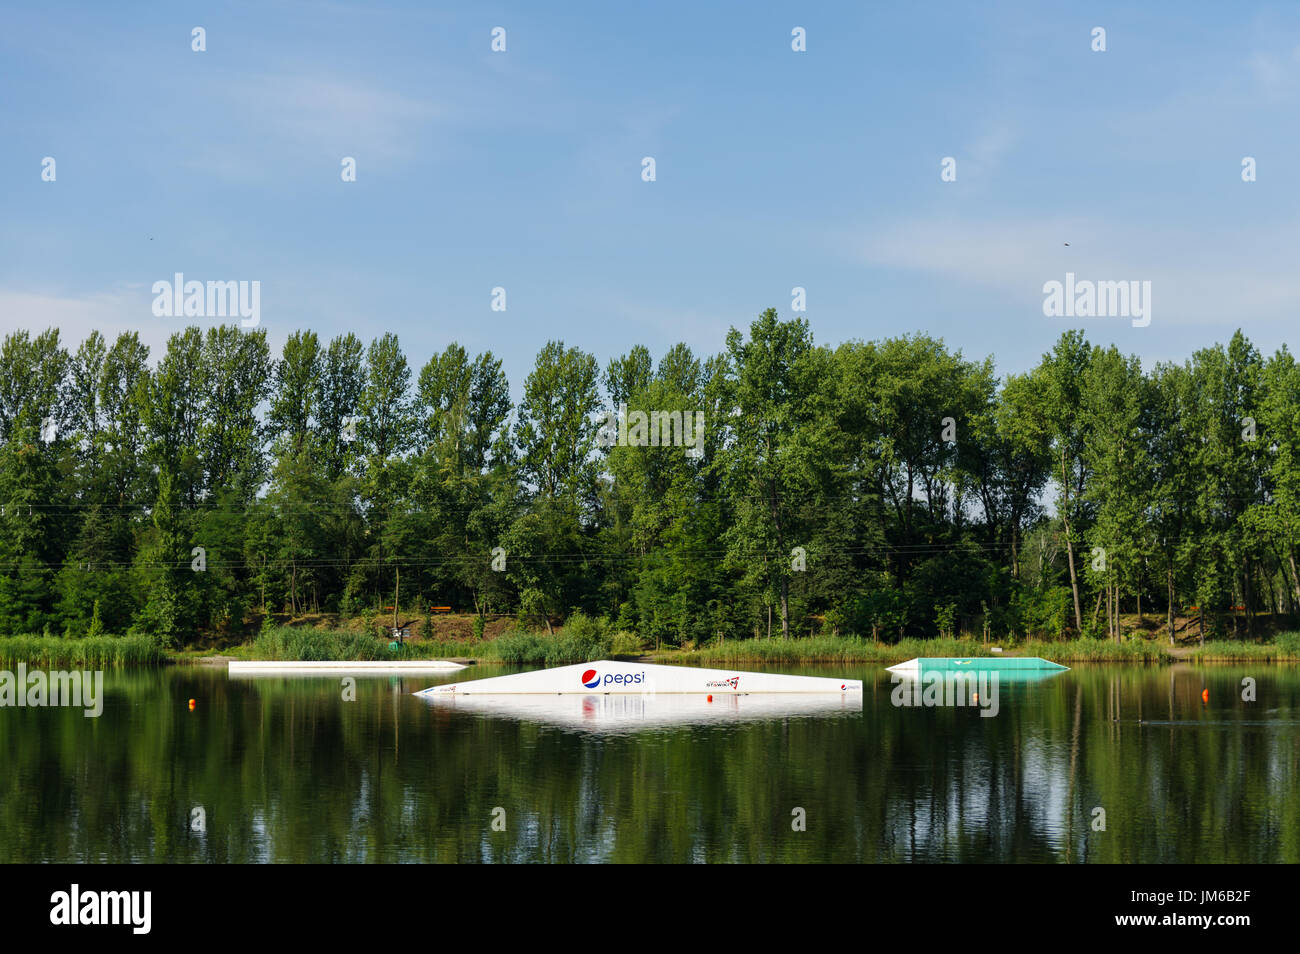 Wakeboarding / Cable skiing obstacles /  Wake Zone Stawiki in Sosnowiec, Poland - Stock Image